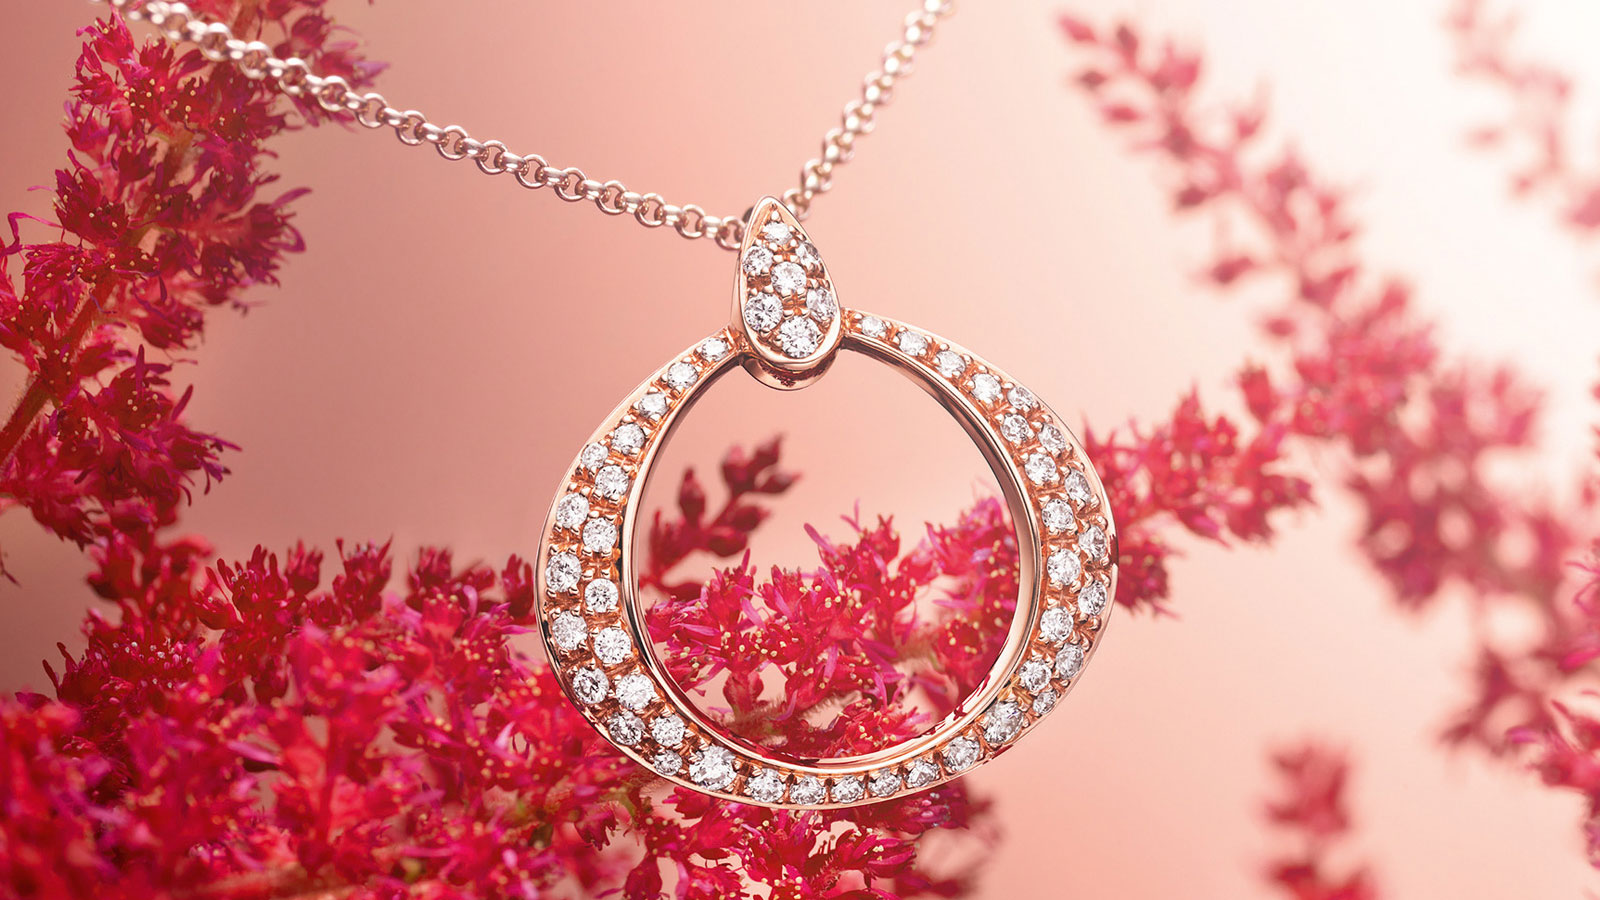 Elegant closeup of an Omega Dewdrop pendant in rose gold and encrusted with diamonds